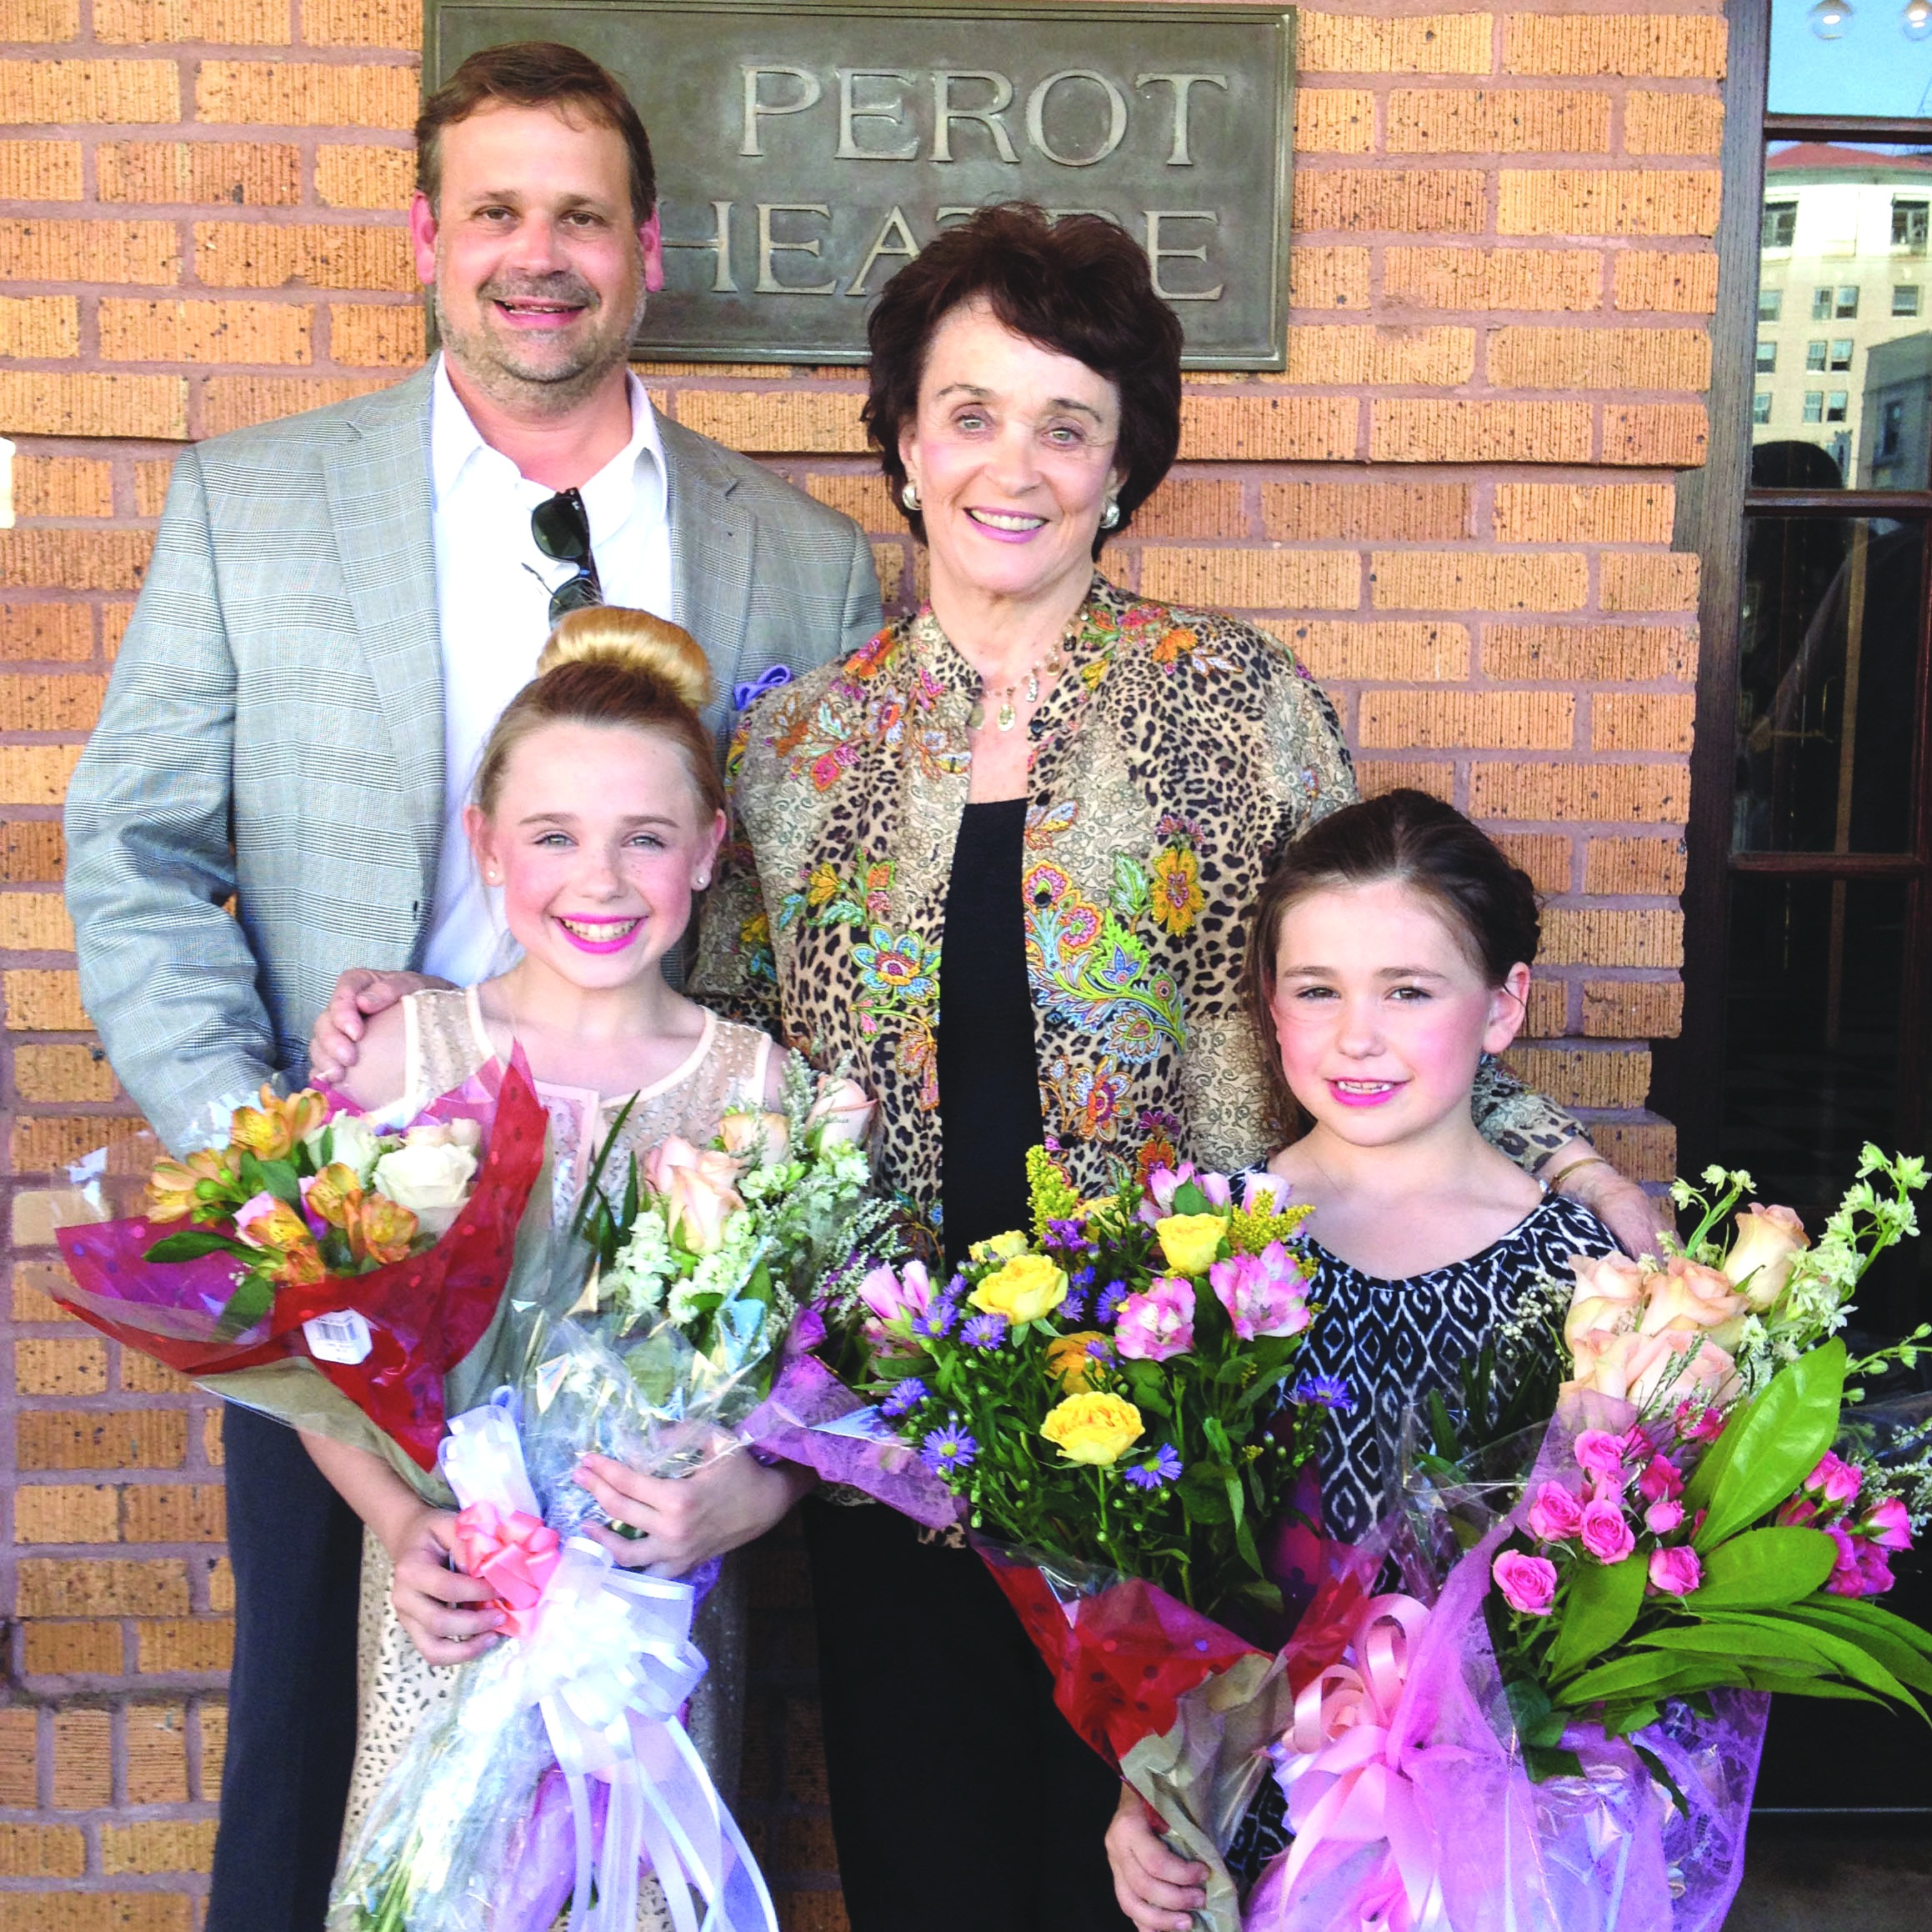 After her granddaughters' dance recital last year, Betty Jo and son, John, take time to congratulate her granddaughters, Helen Clark and Francie.